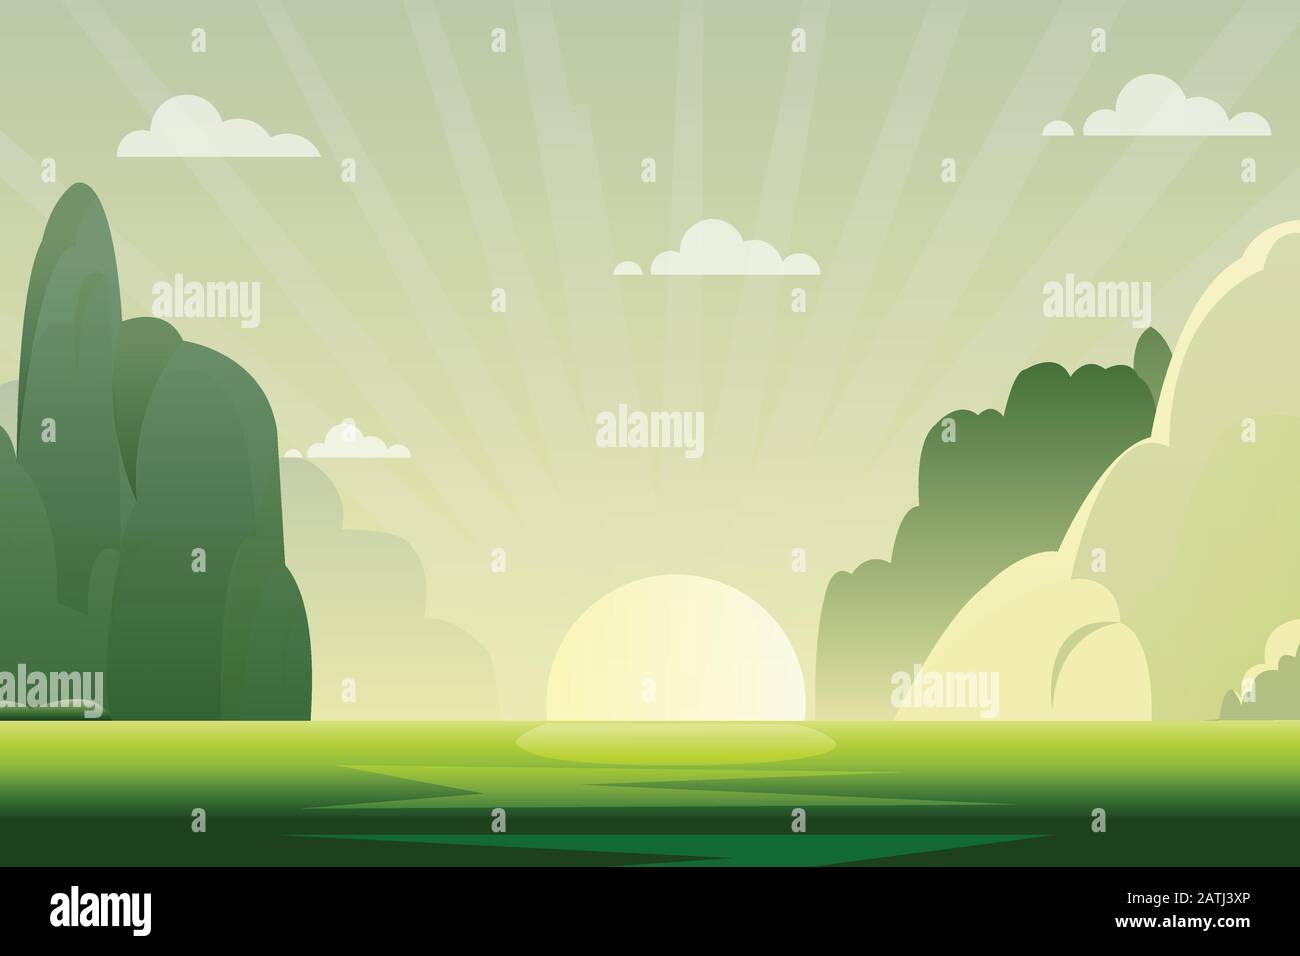 Morning Nature Landscape With Sunrise Vector Illustration Green Nature Scene With Hills And Sky Background Stock Vector Image Art Alamy